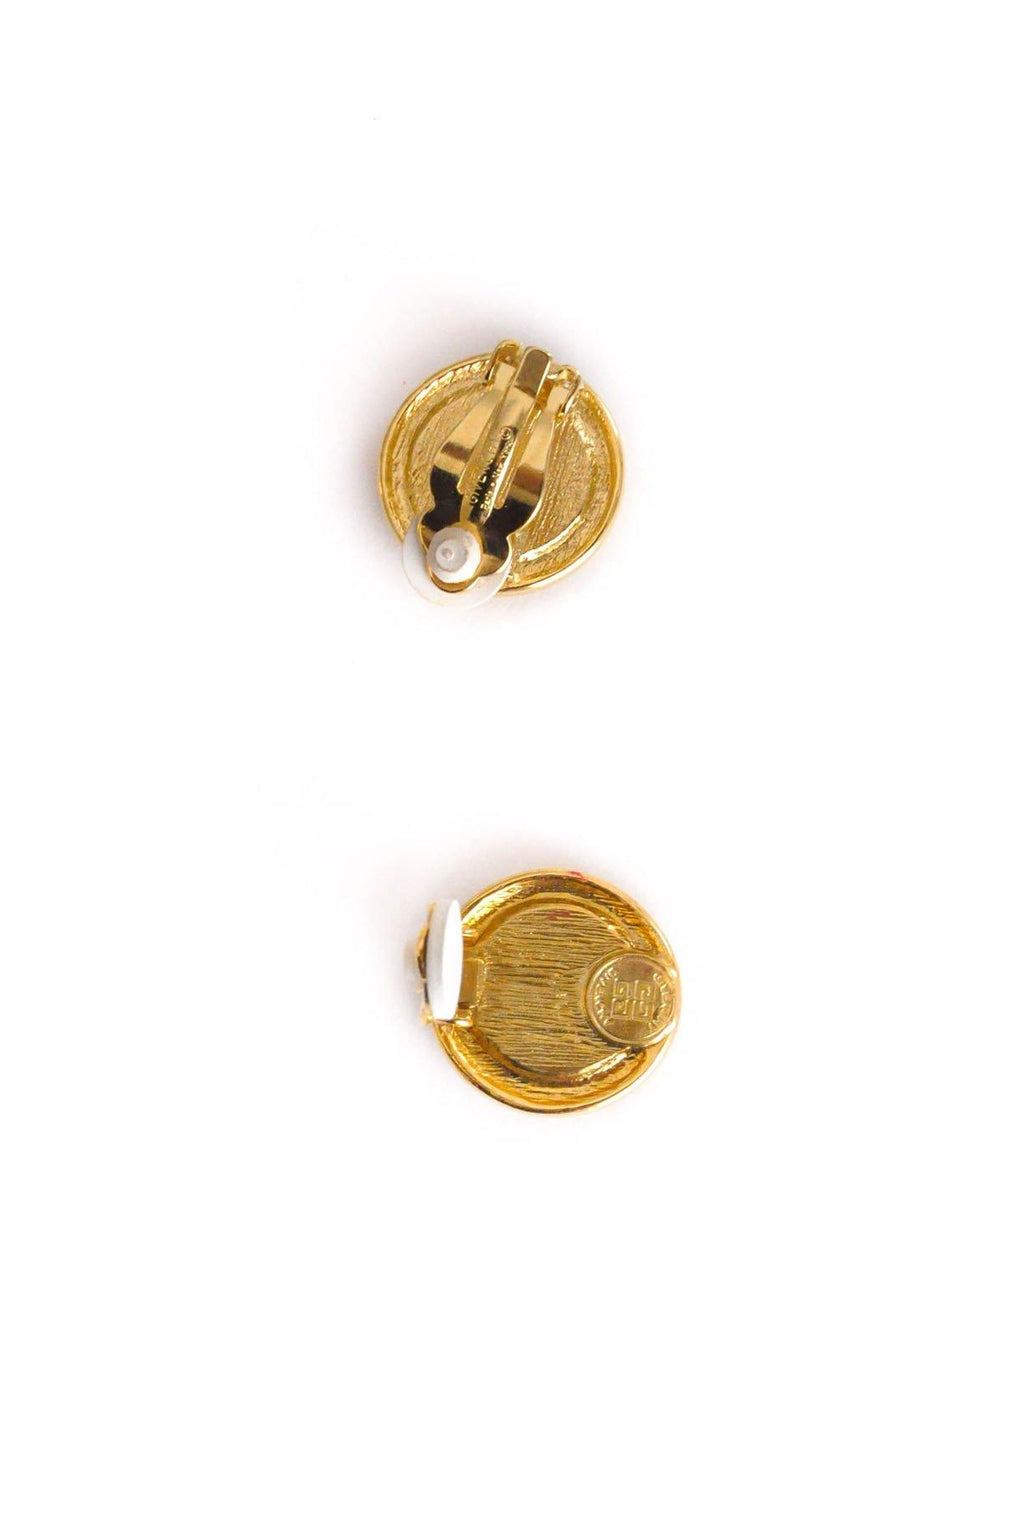 Givenchy Enamel Coin Clip-on Earrings